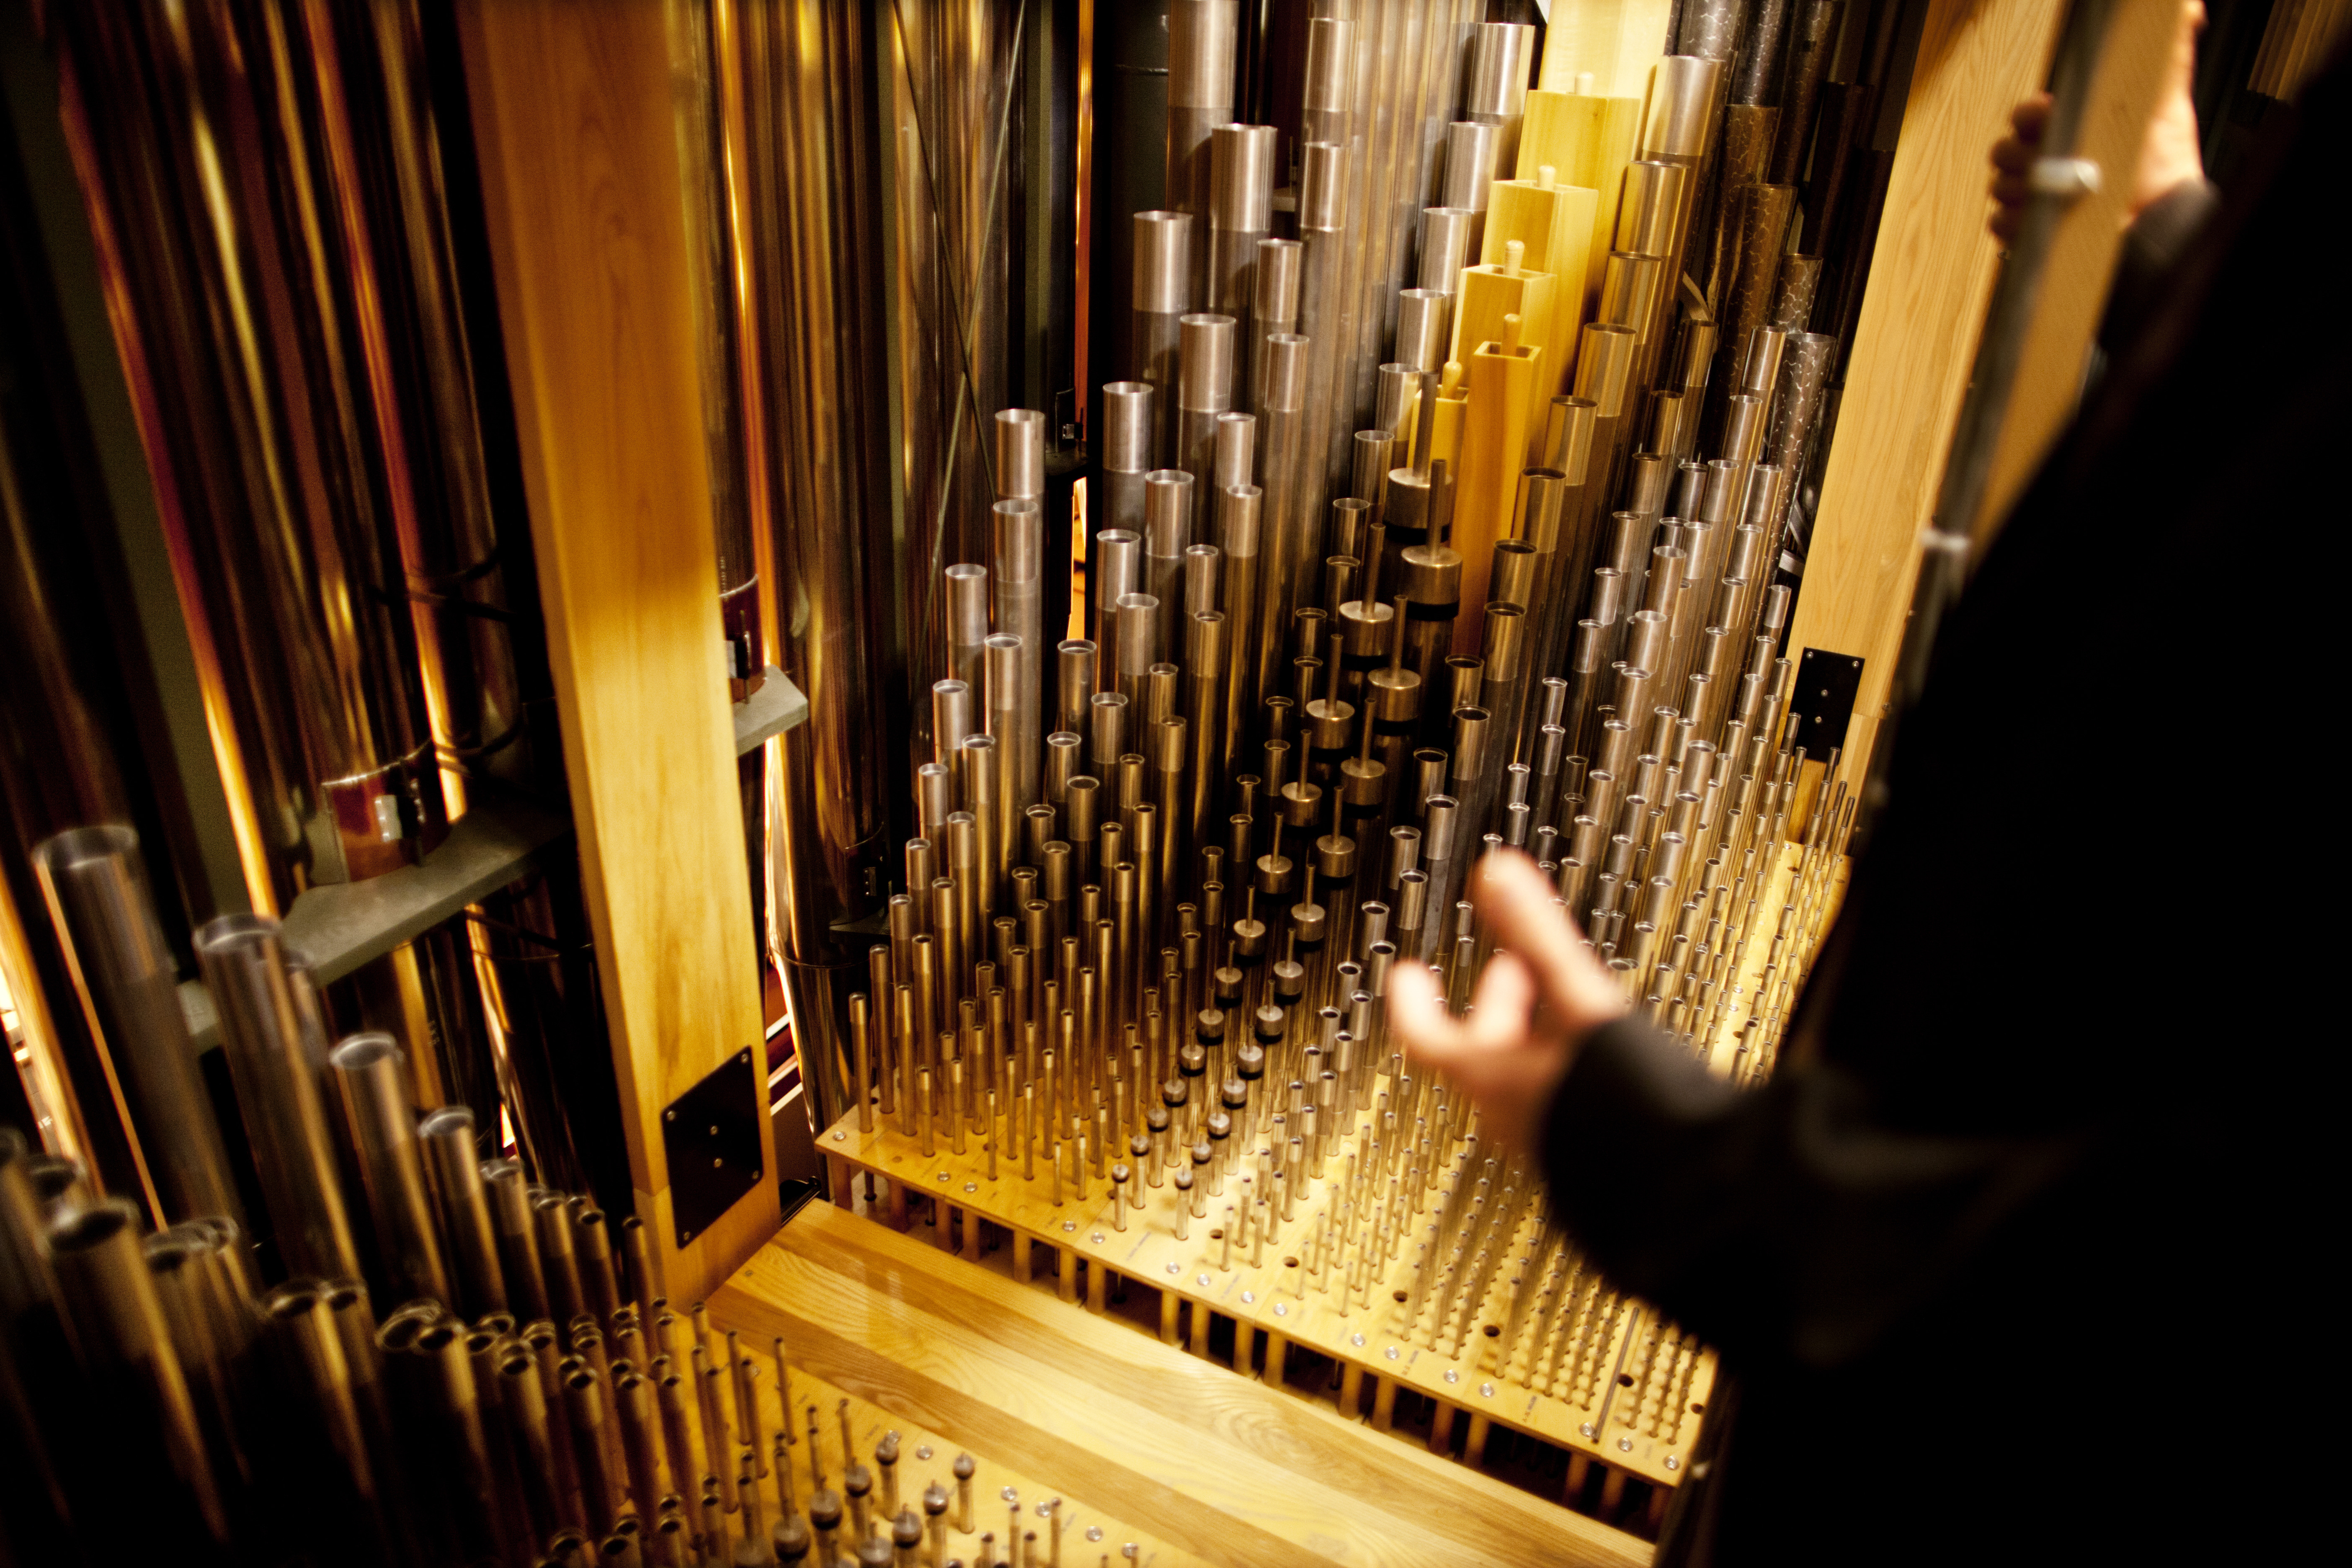 Pipes inside the organ chamber range from five-eighths of an inch to 32 feet long, with varying shapes and diameters. Each pipe is meticulously tuned to create the organ's unique tonality.